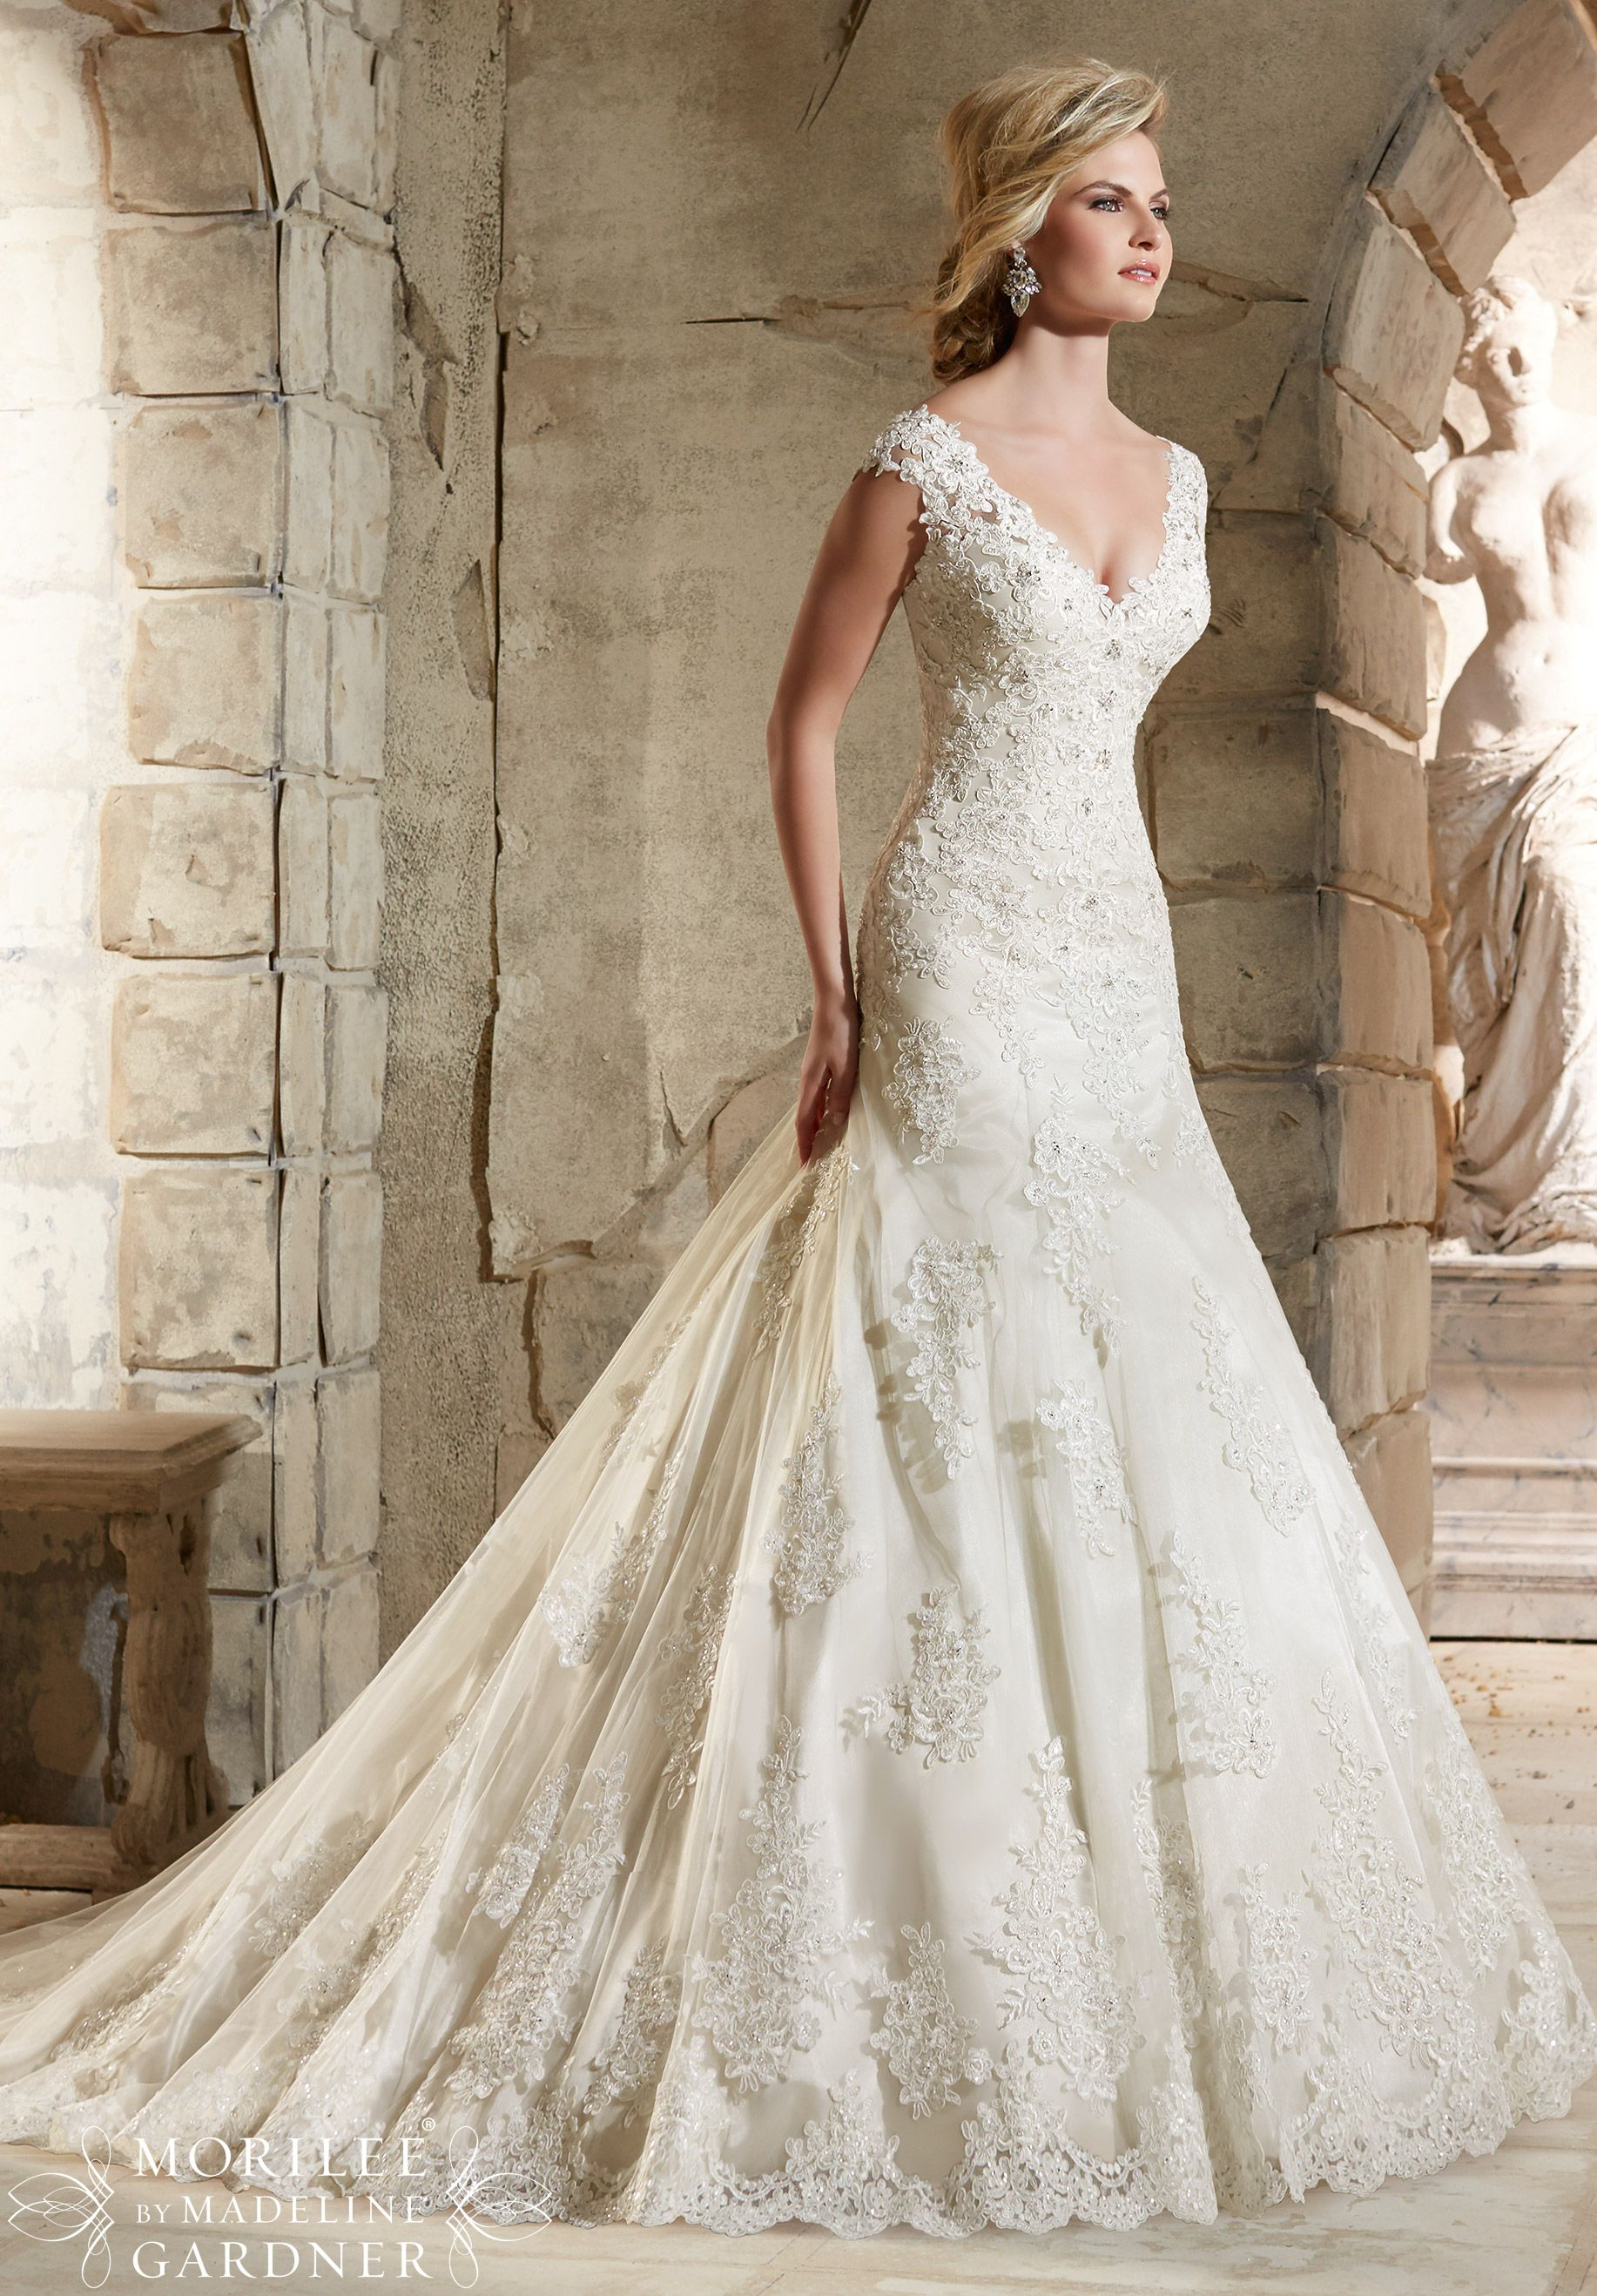 Wedding dresses alencon lace appliques on net with crystal